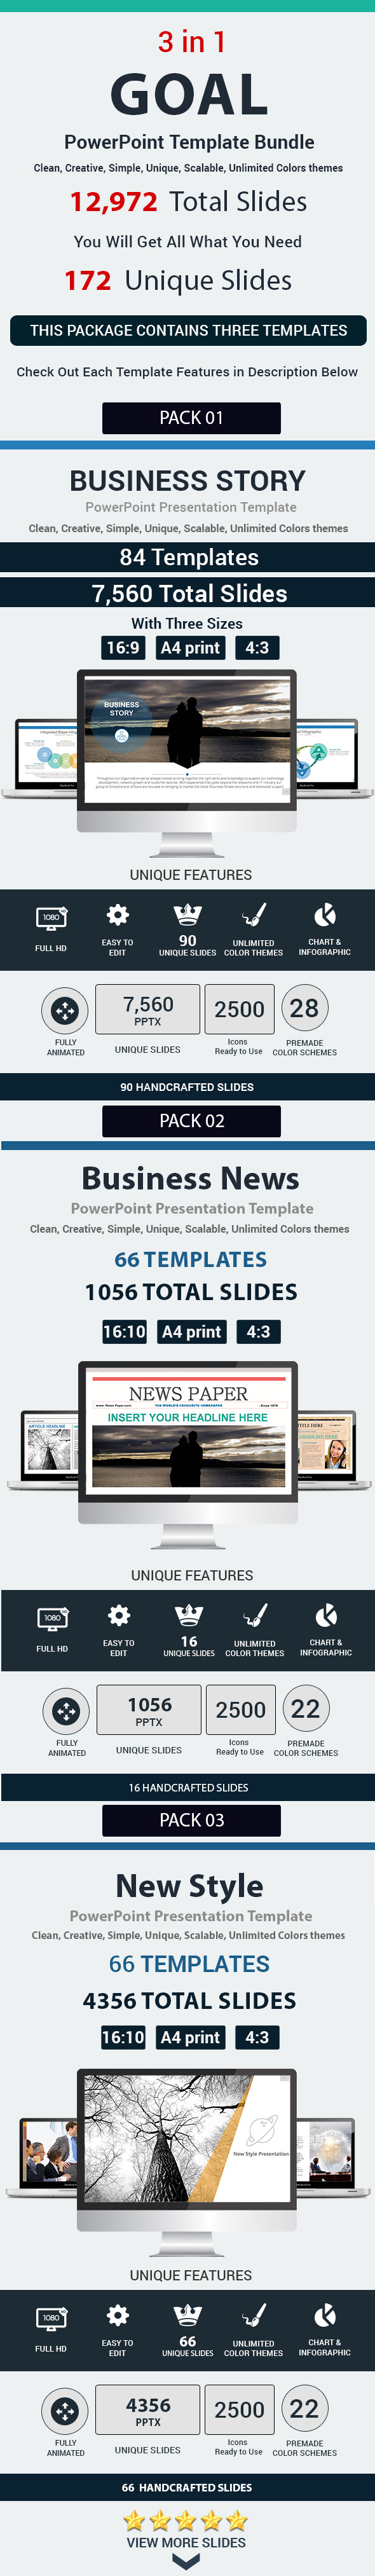 Goal 3 in 1 PowerPoint Template Bundle - Business PowerPoint Templates